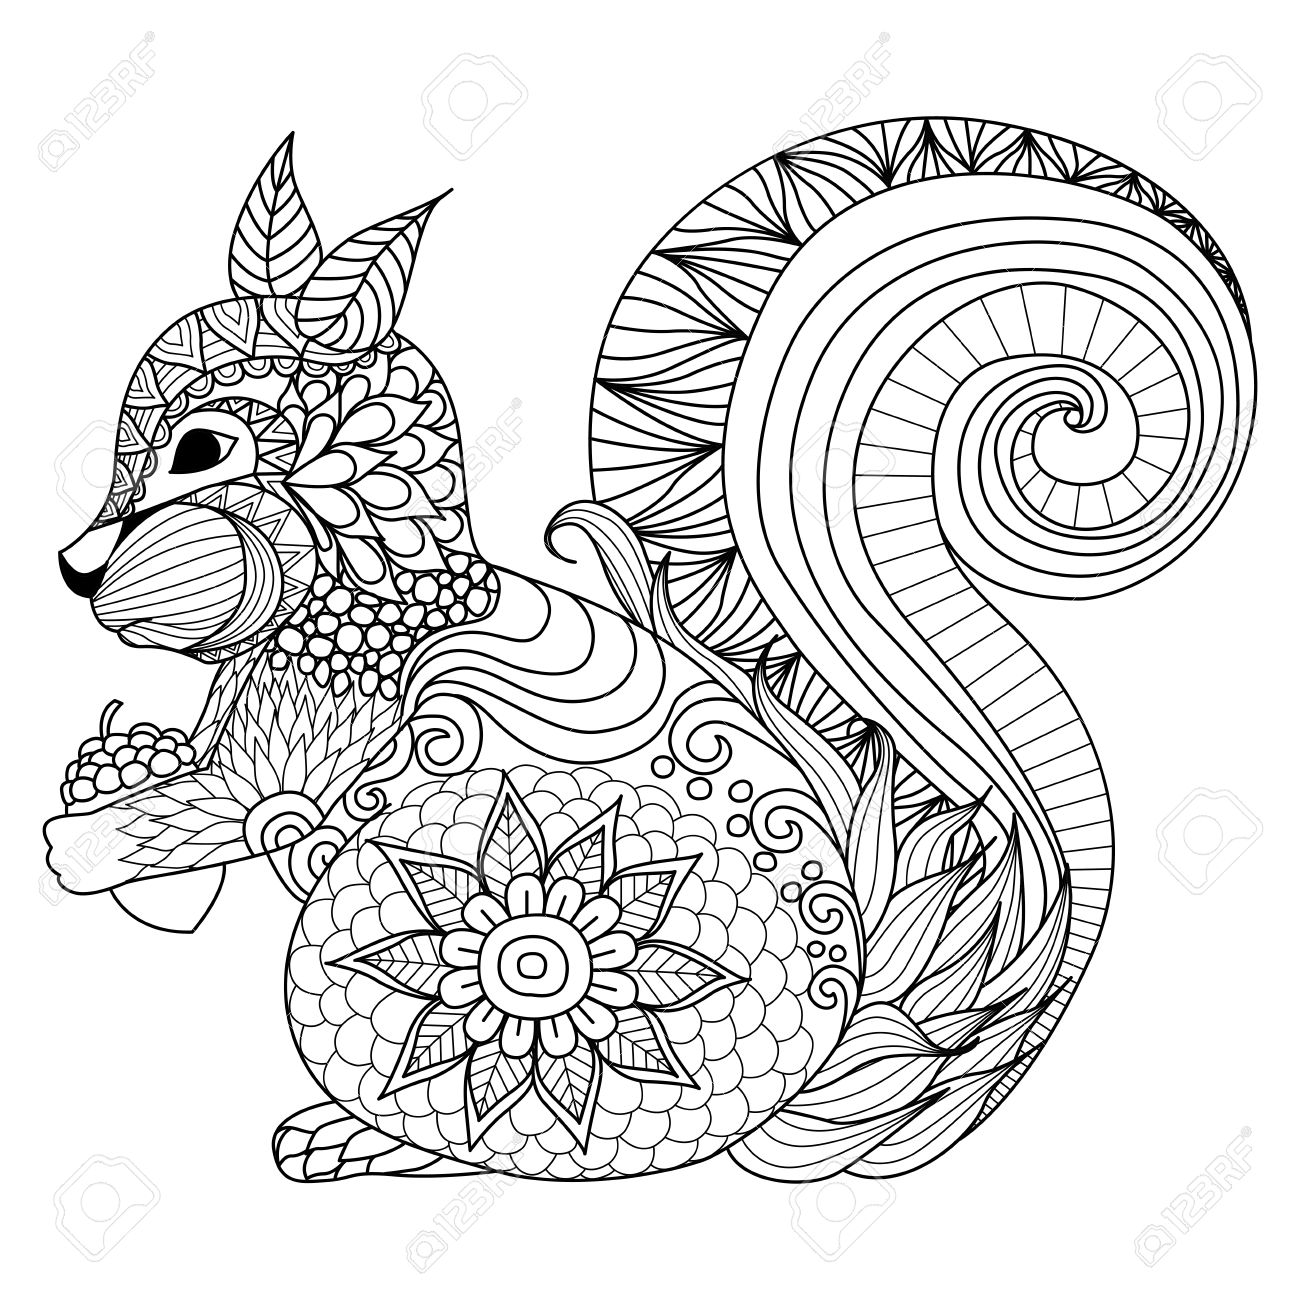 1300x1300 Hand Drawn Squirrel Zentangle Style For Coloring Book,tattoo,t